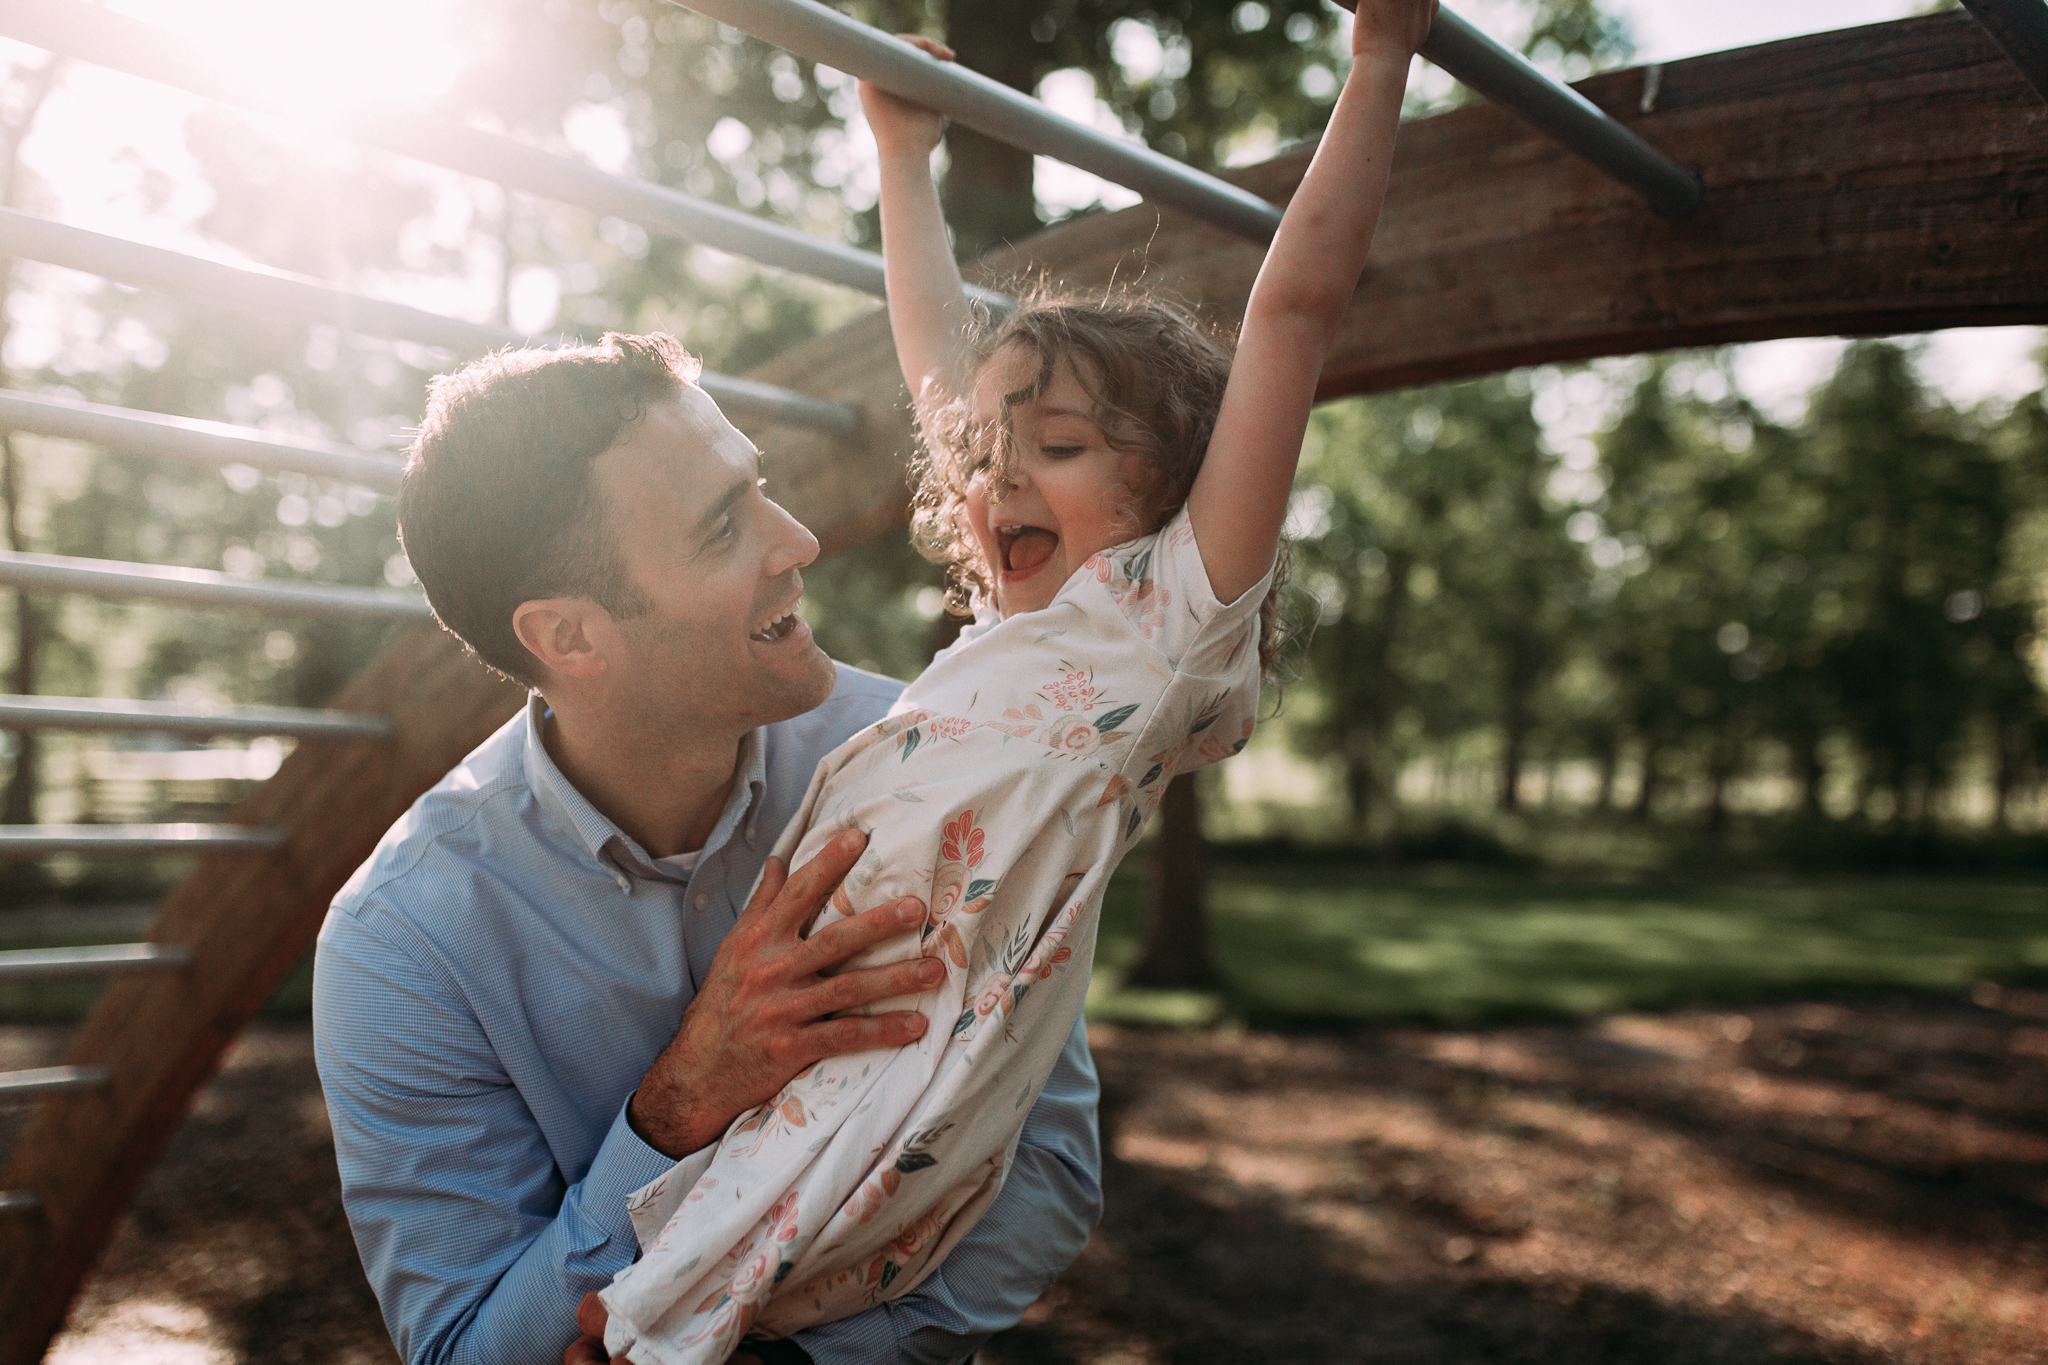 dad helping daughter jungle gym outdoor sunset golden hour The Barn at One Loudoun Ashburn Northern Virginia Liifestyle Documentary Family Marti Austin Photography